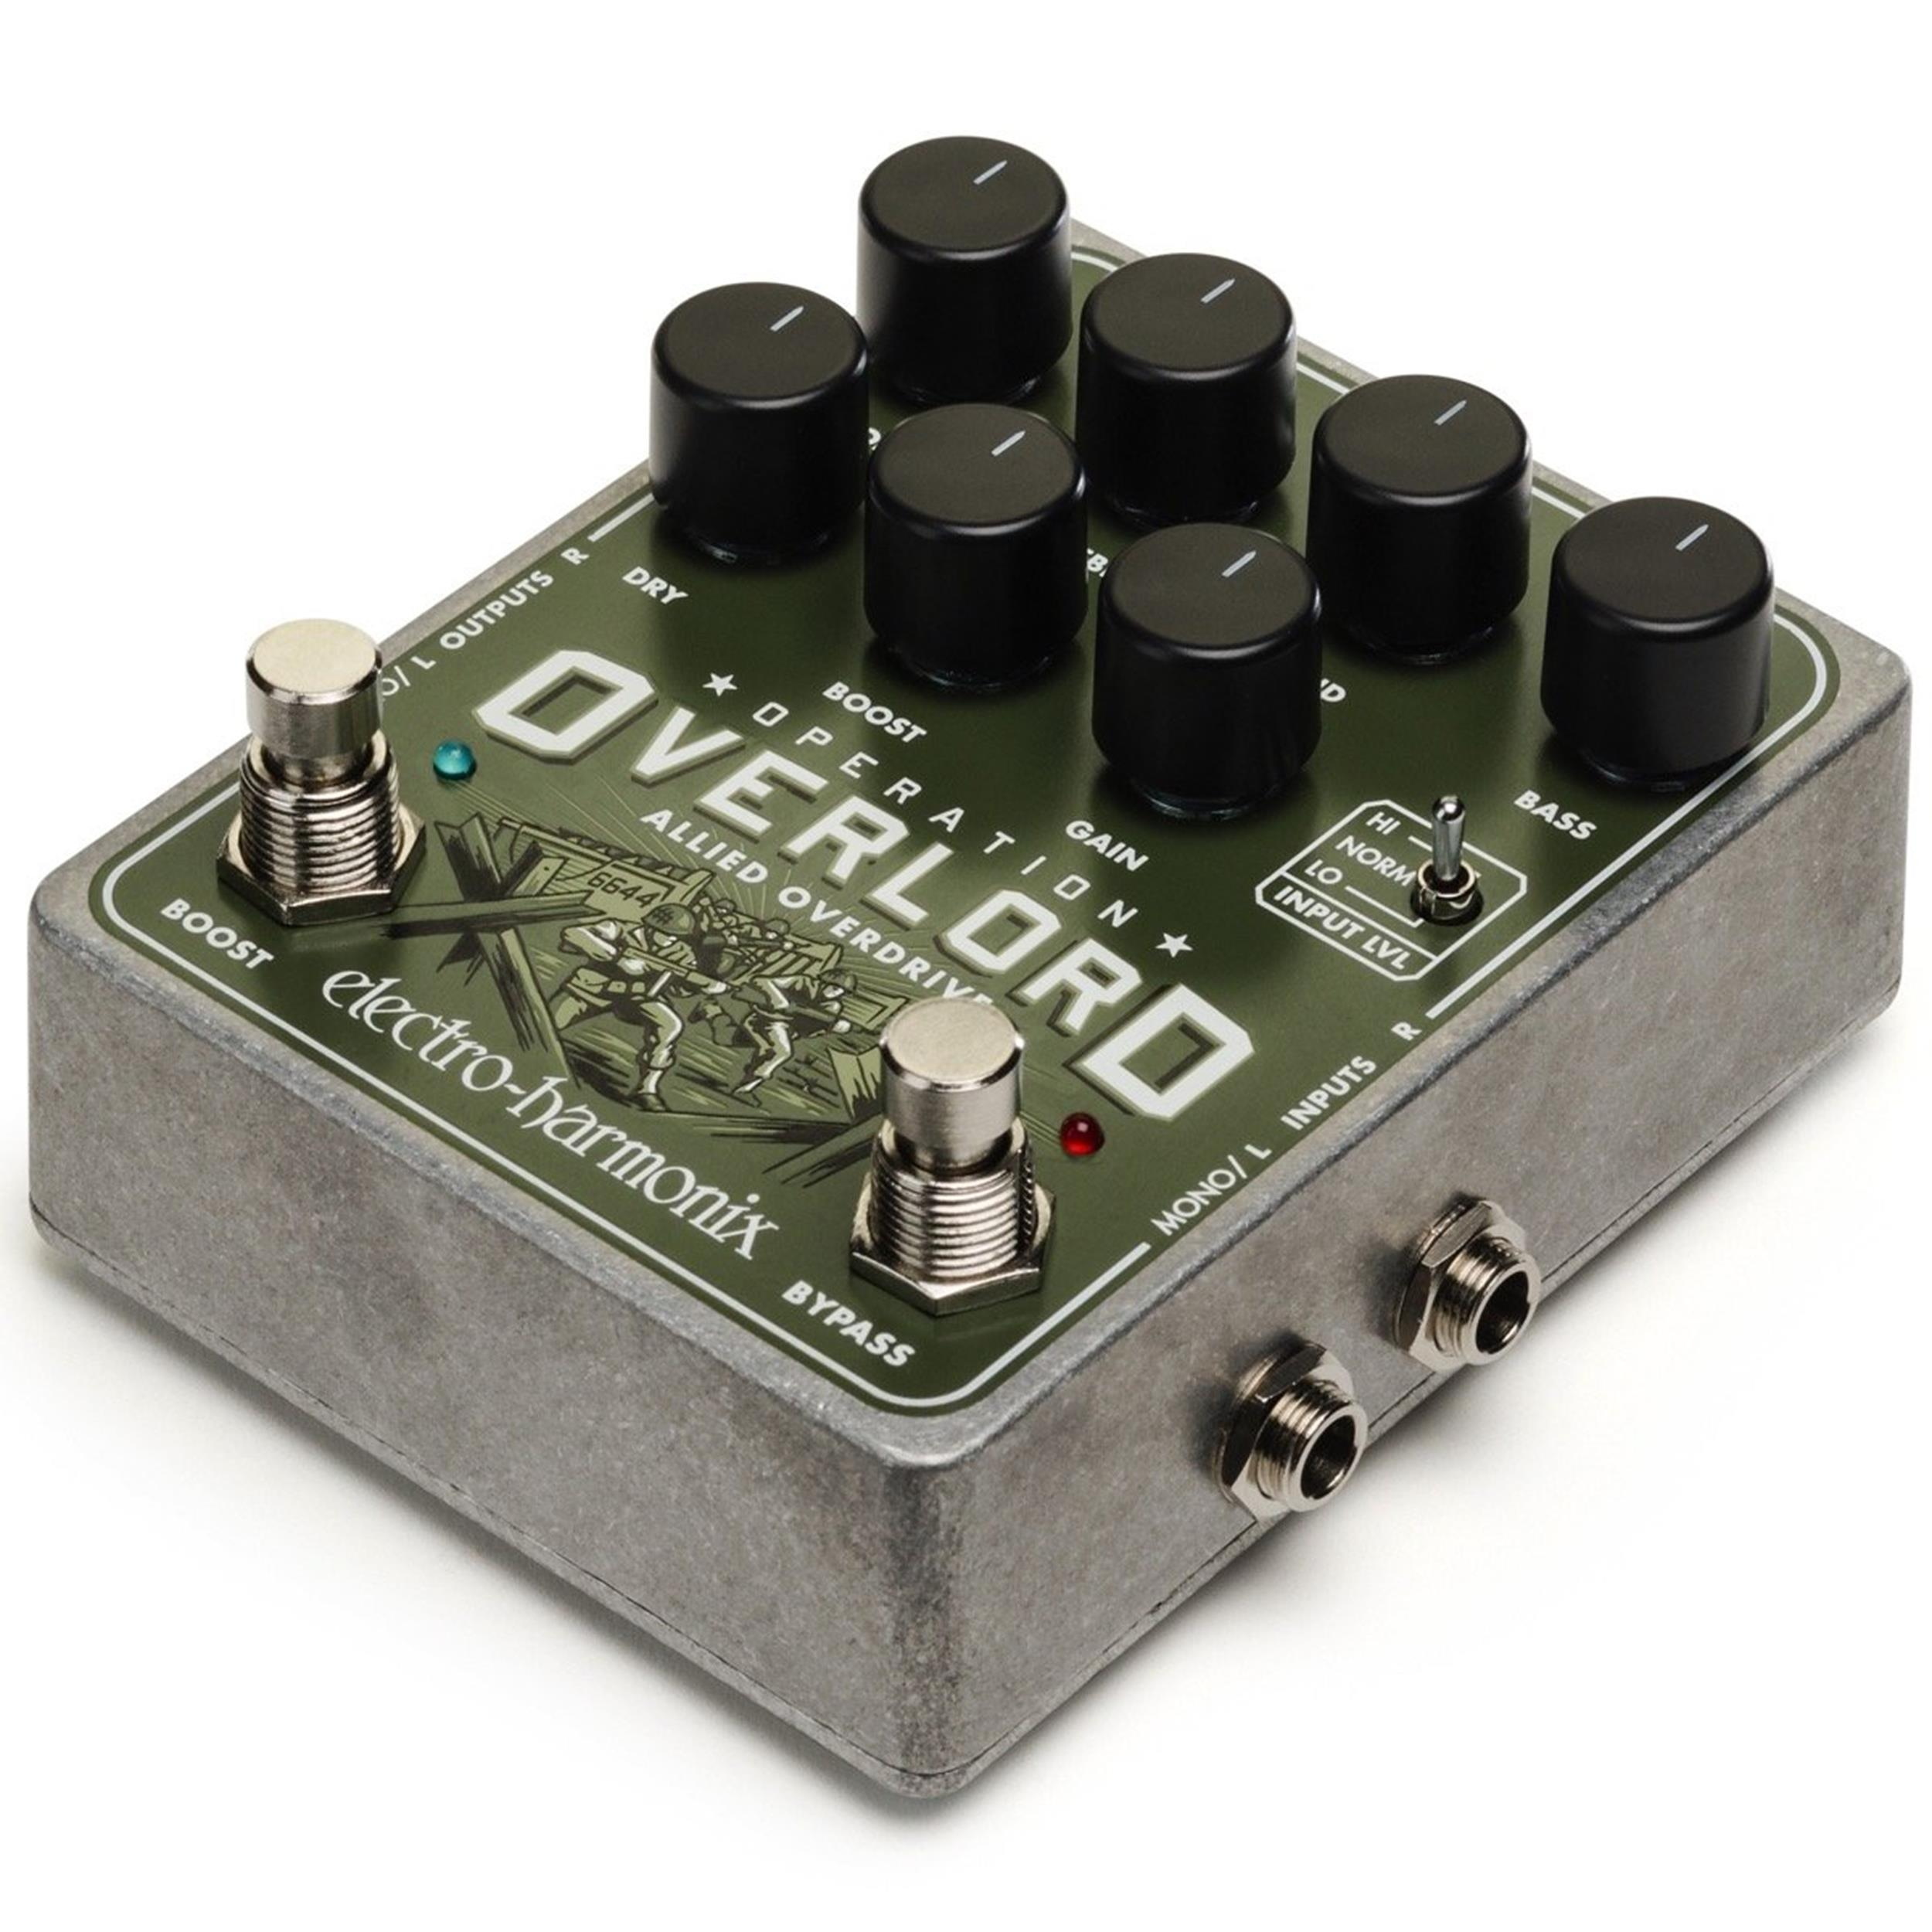 ELECTRO-HARMONIX-OPERATION-OVERLORD-sku-18781